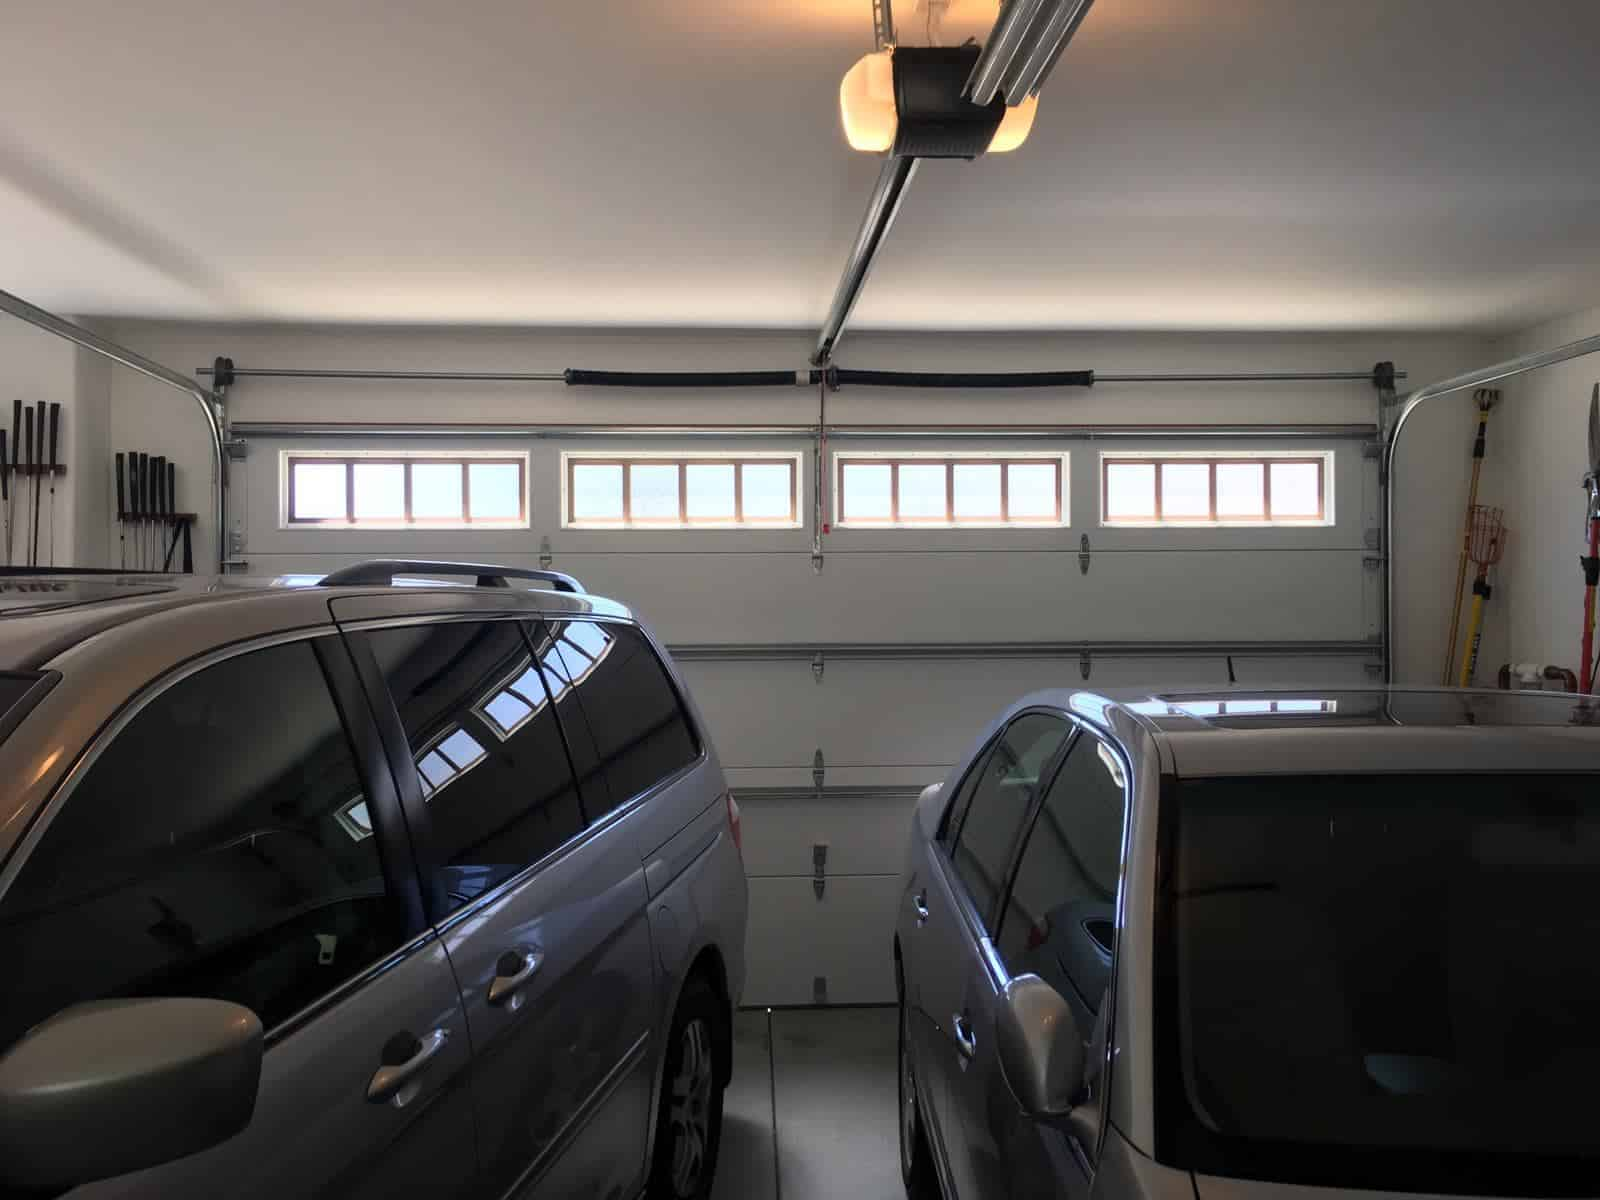 Mountlake Terrace WA Garage Door Repair & Replacement